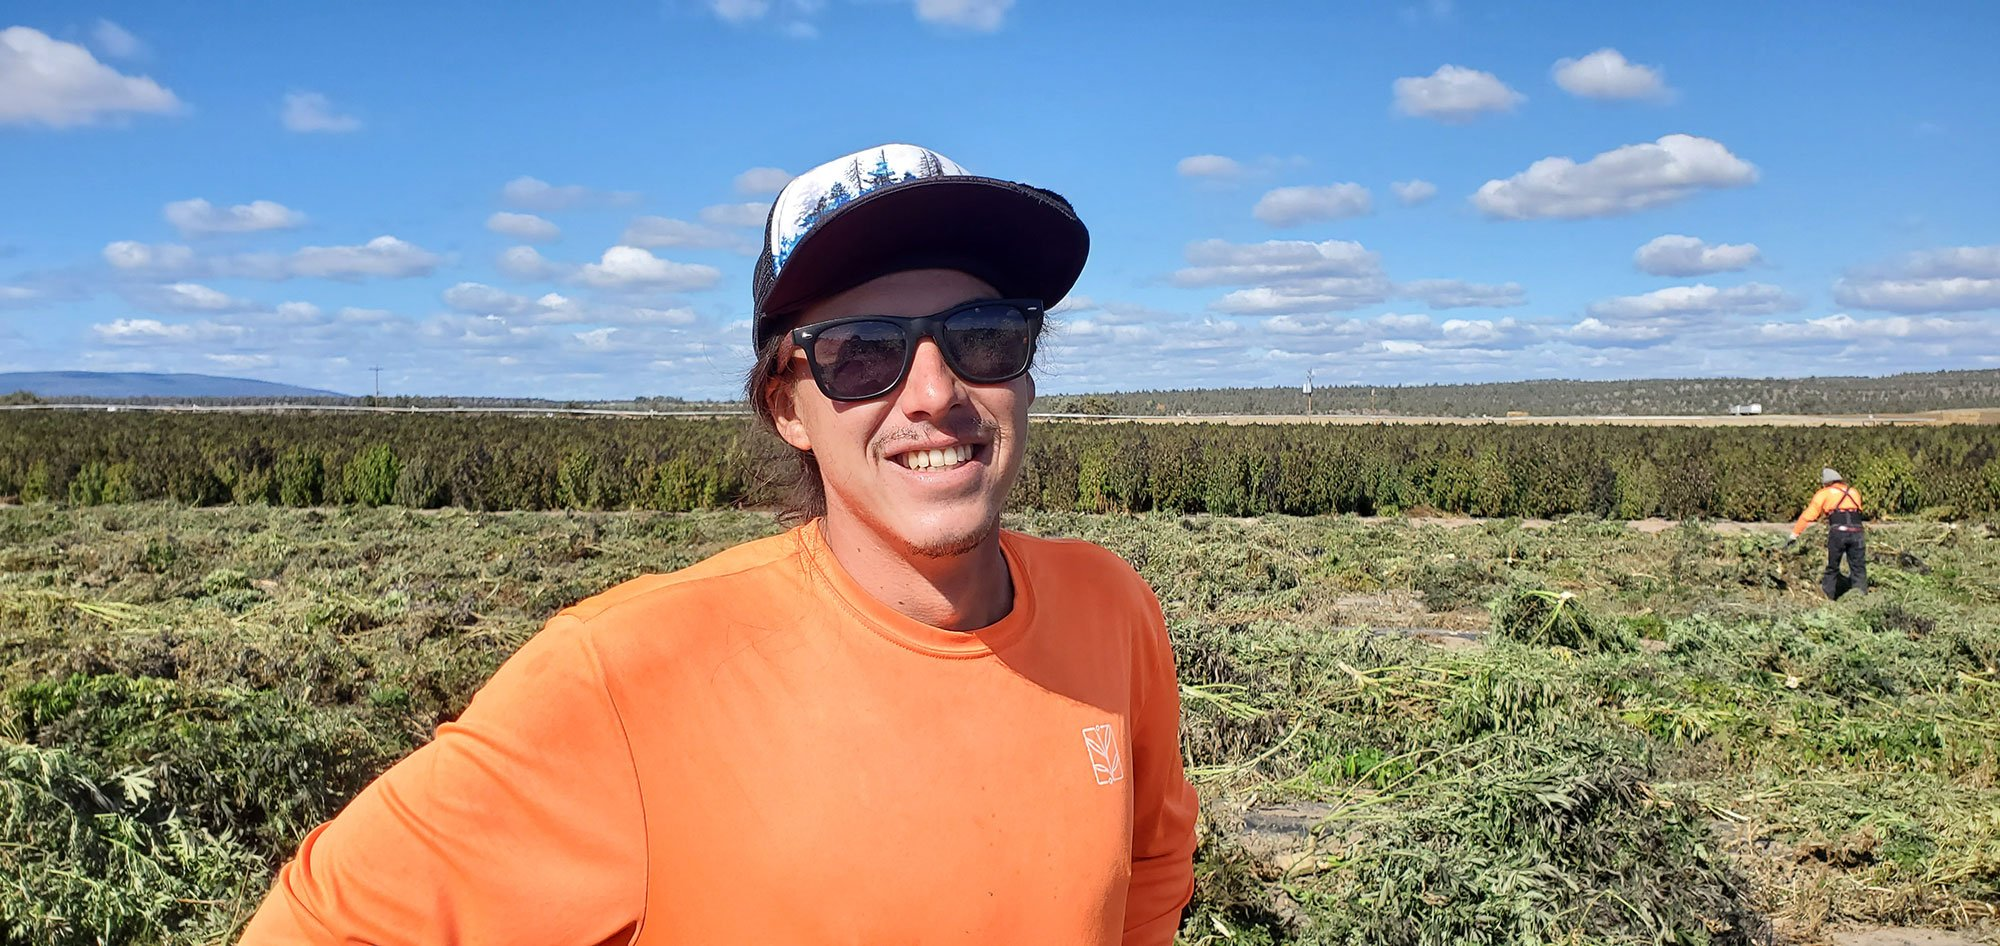 Faces of the Farm: Kanoe Phillips - Field Hand Lead & Irrigation Assistant